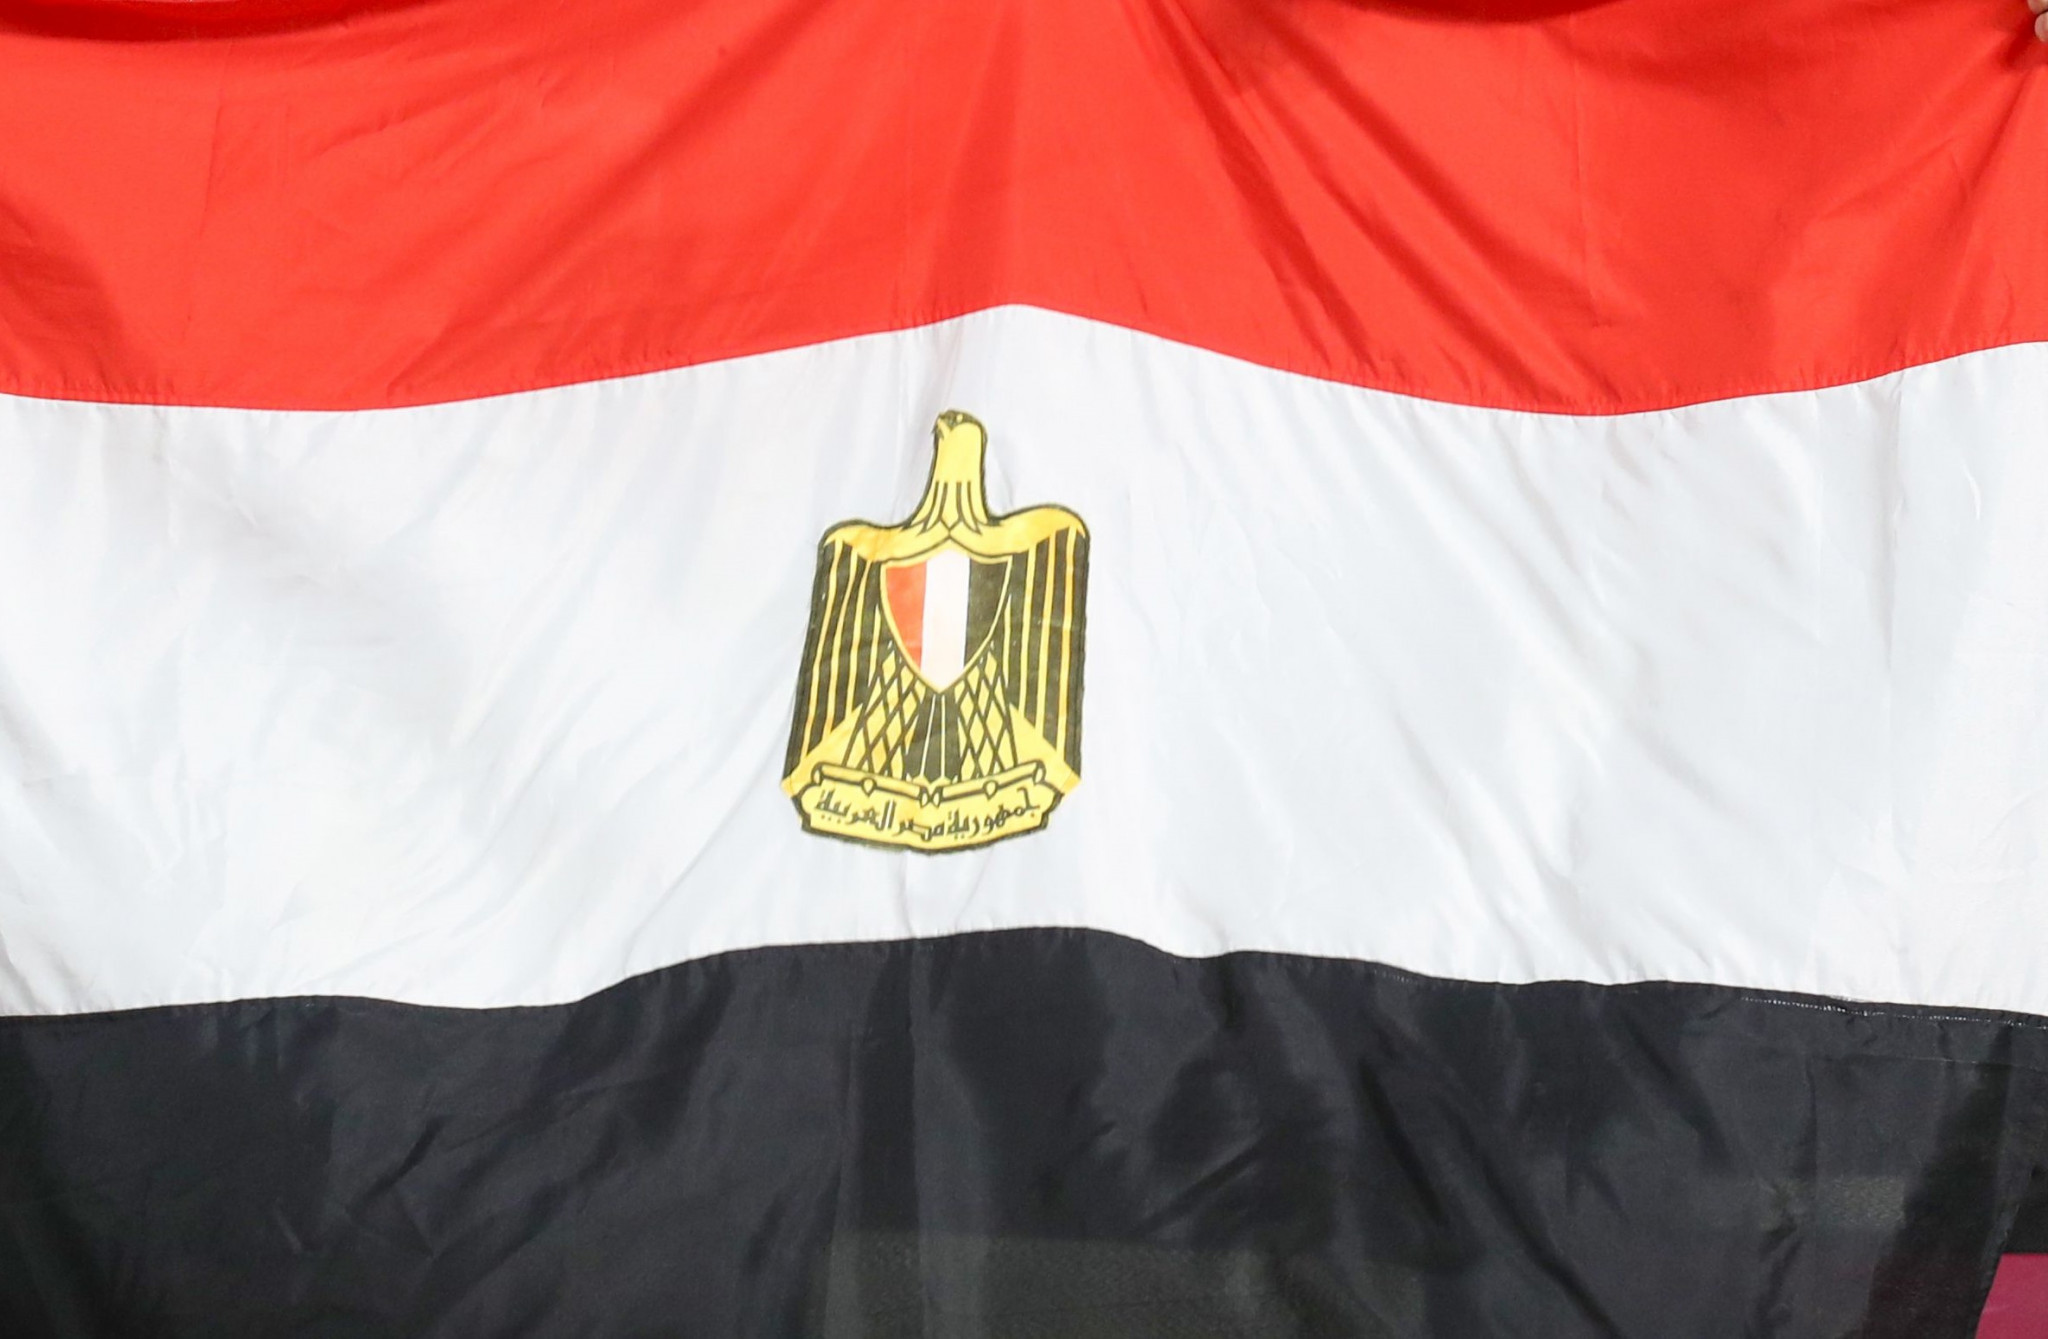 Egypt is banned from weightlifting at Tokyo 2020 ©Getty Images